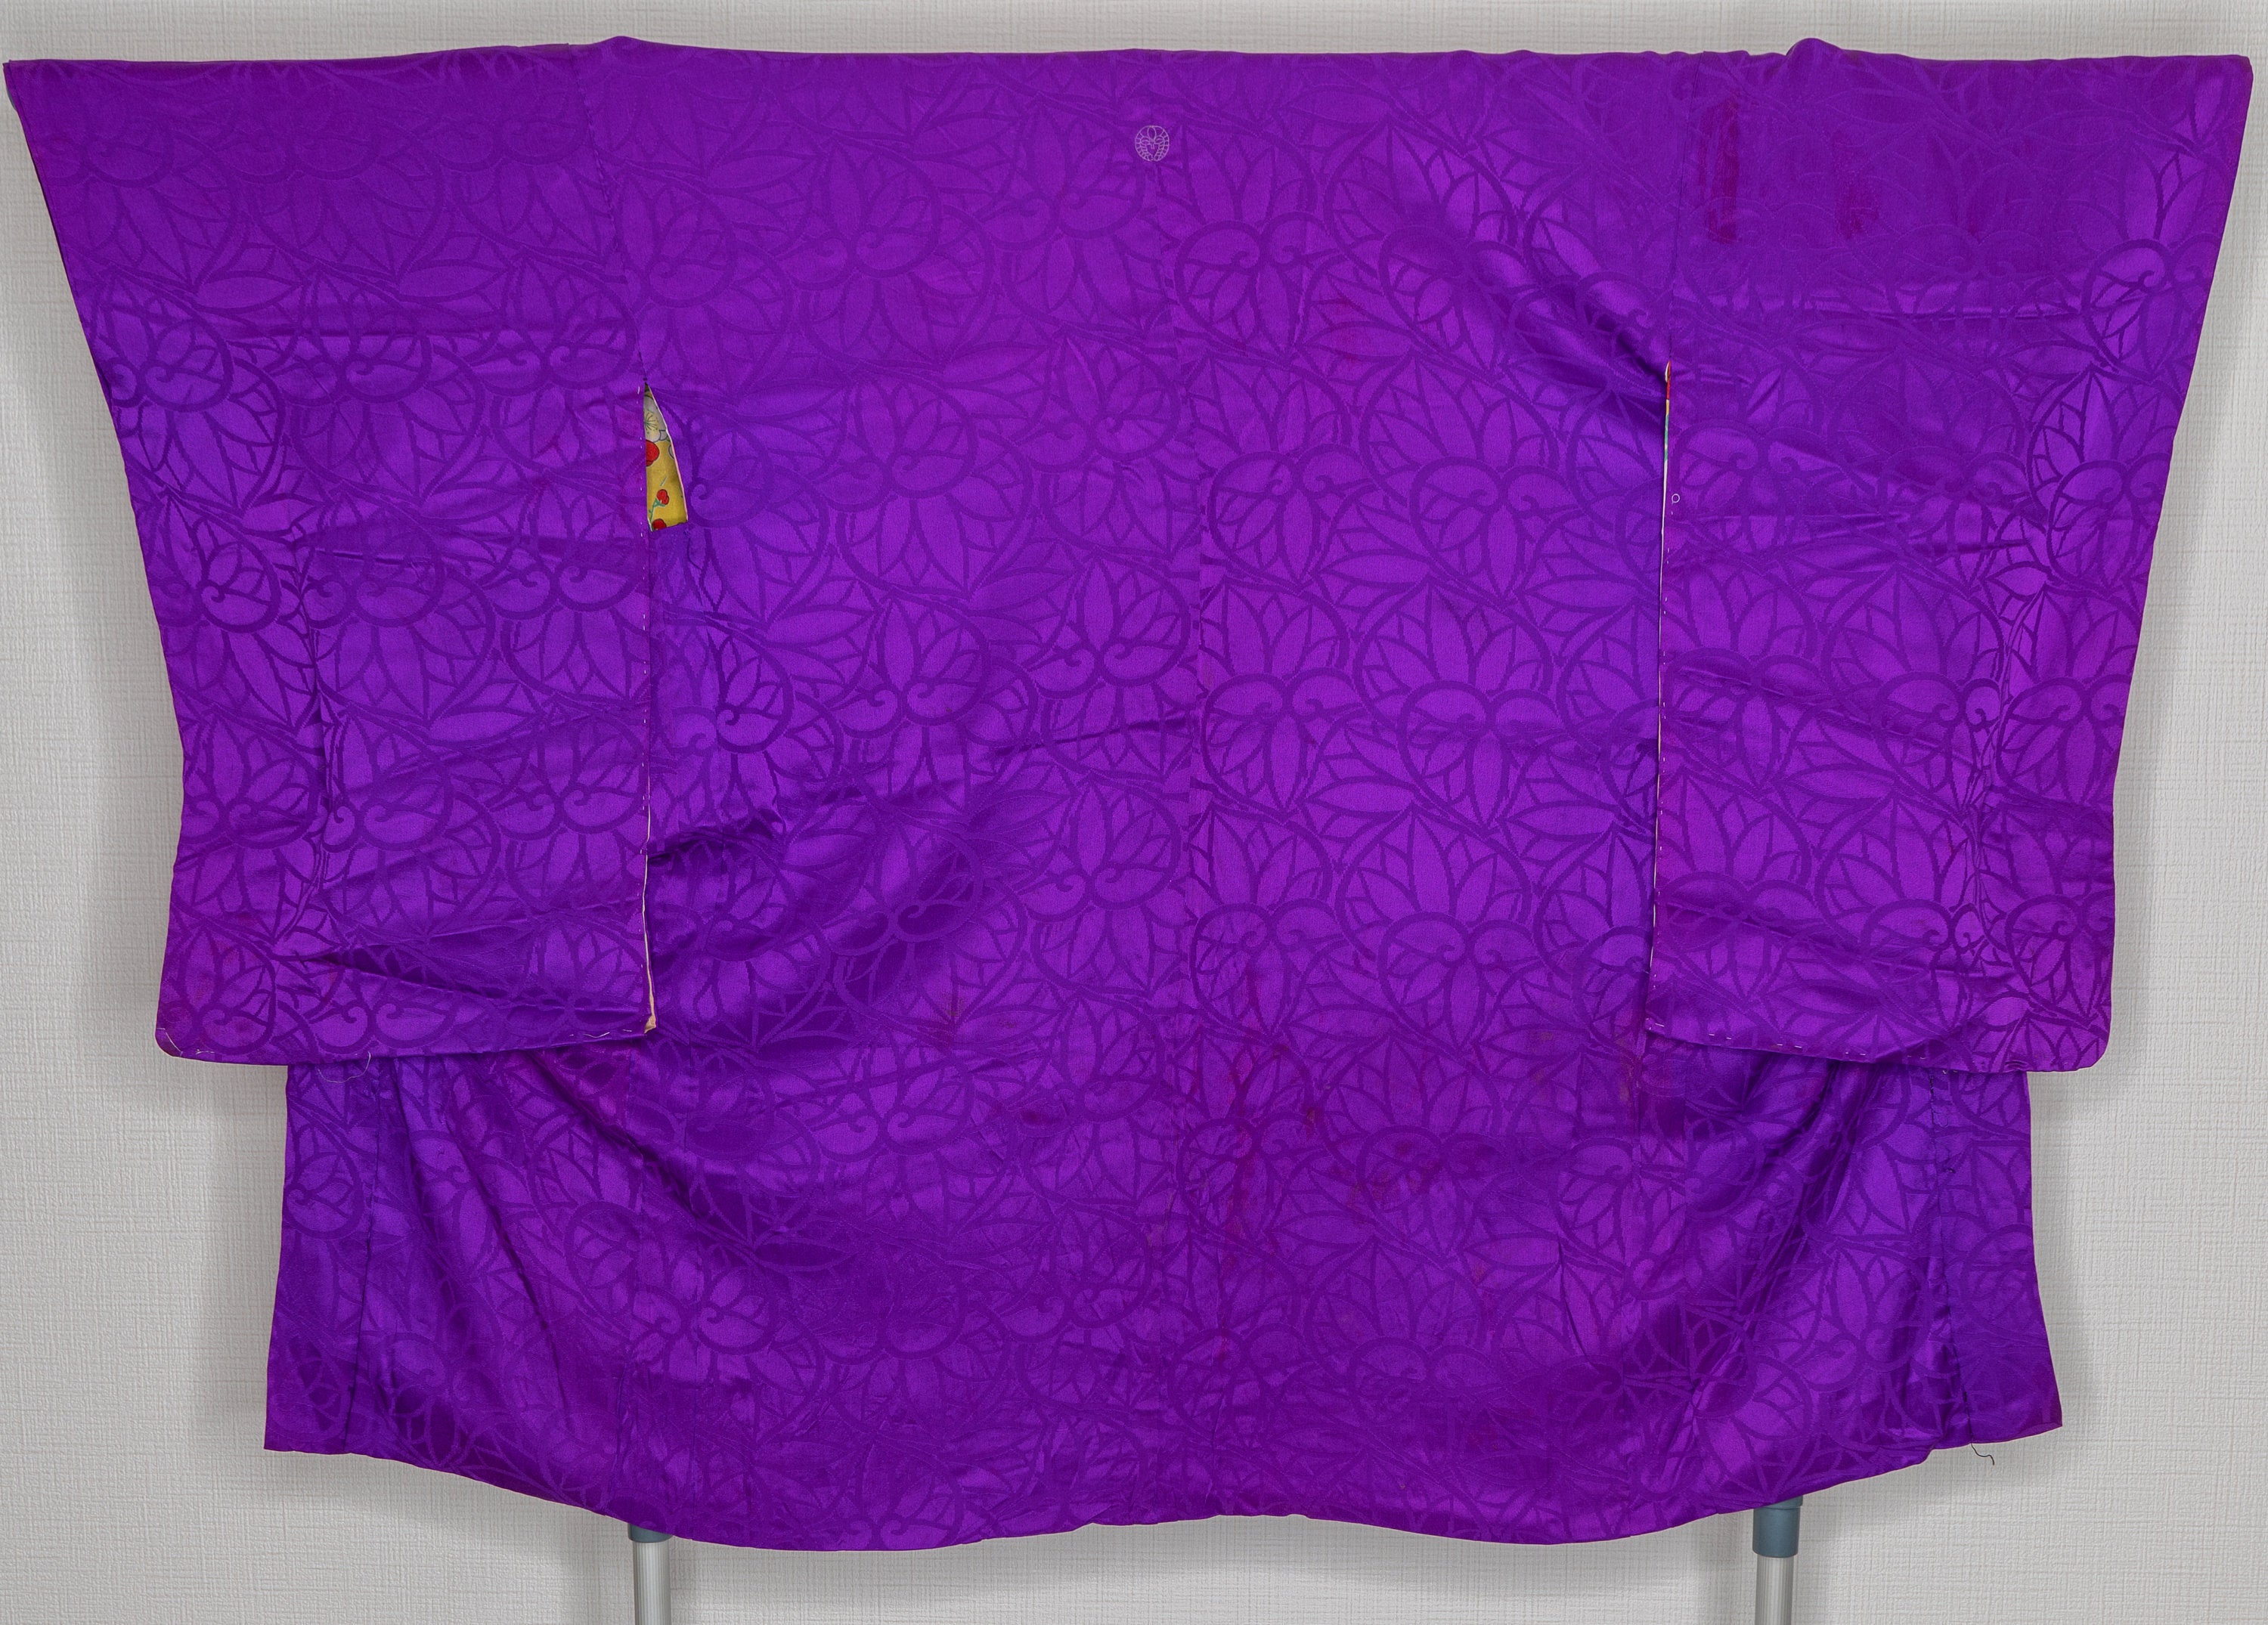 Vintage 1950s Haori - High Quality Silk - Purple with Flower Patterns